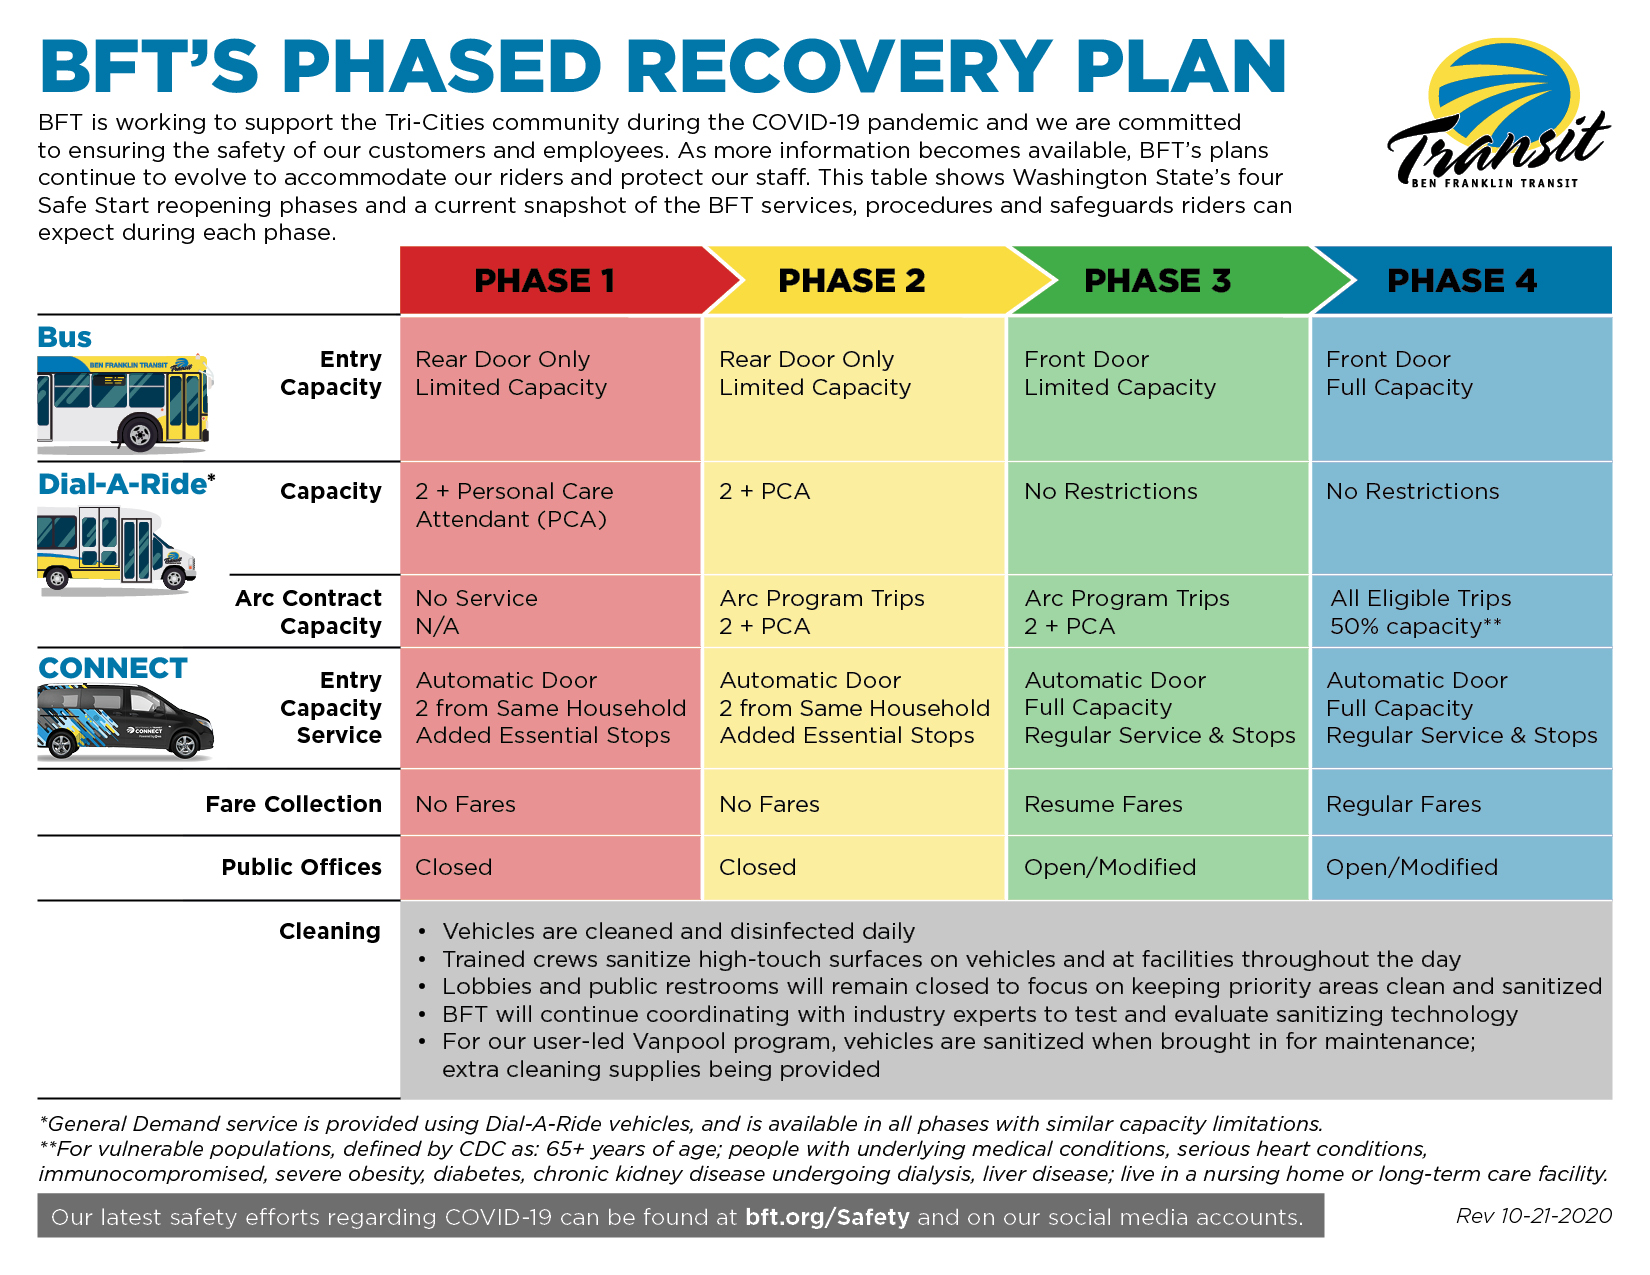 BFT-Phased-Recovery-Plan-Overview_Rev10-21-2020_FINAL